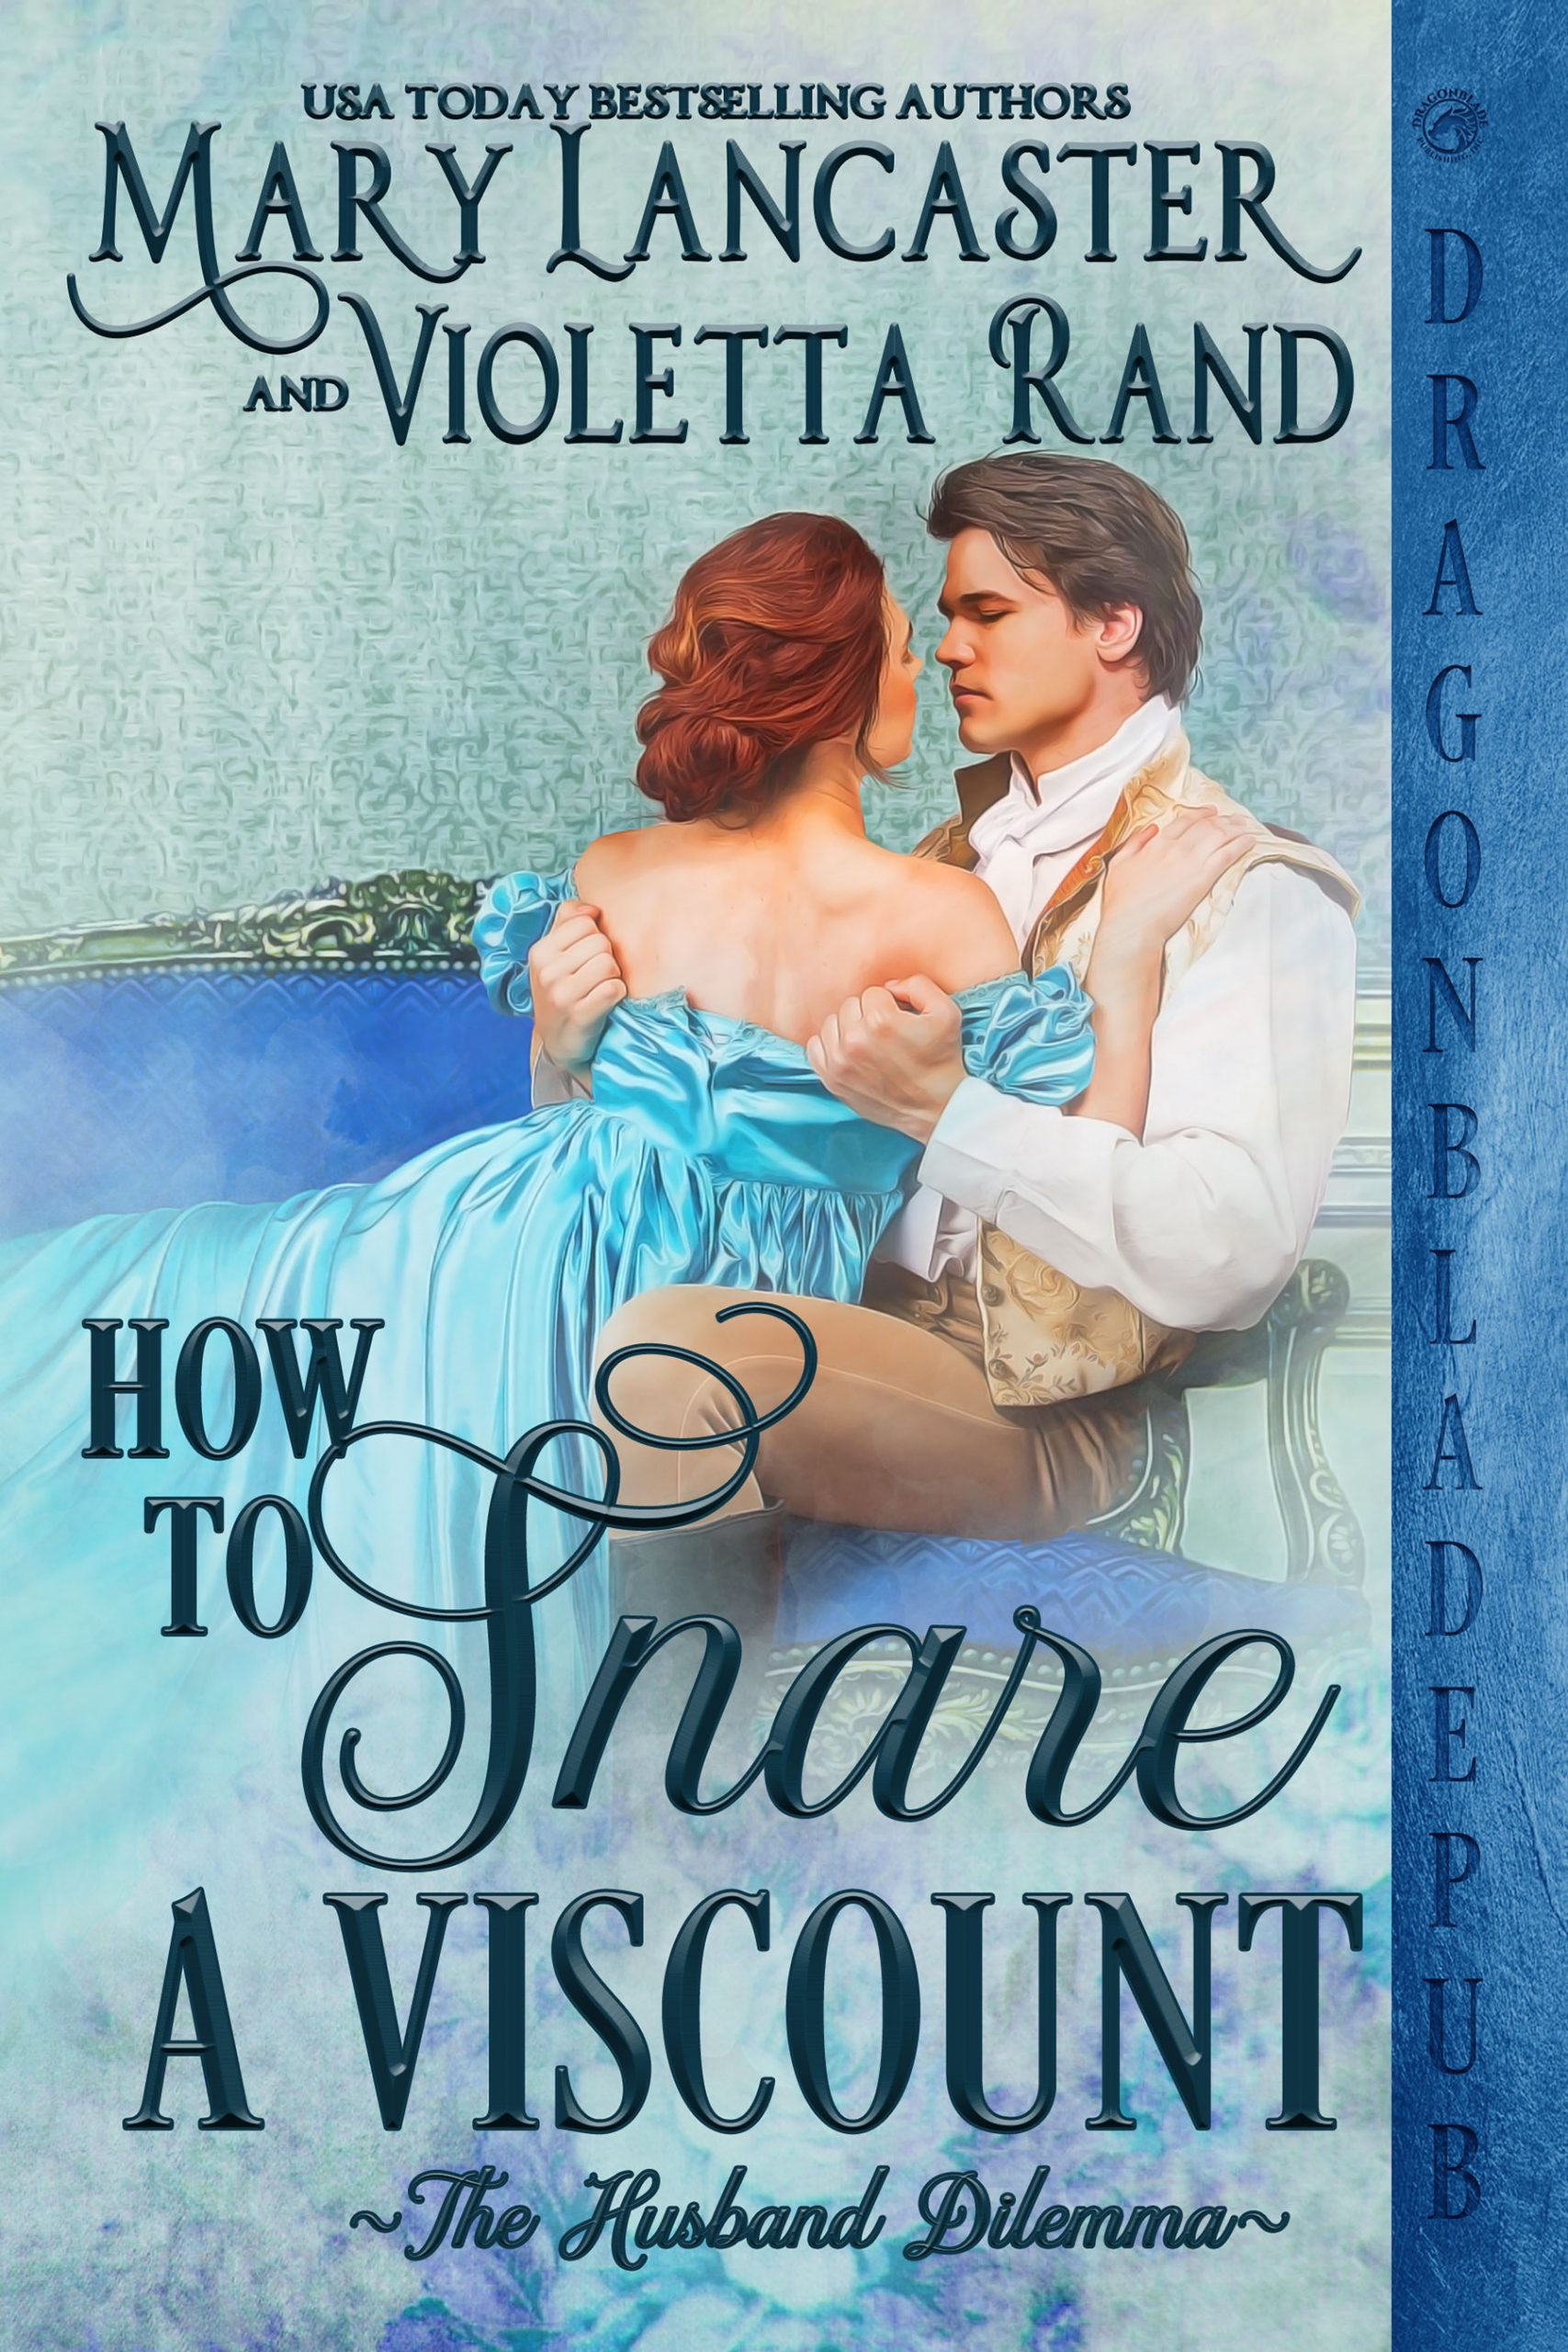 How to Snare a Viscount